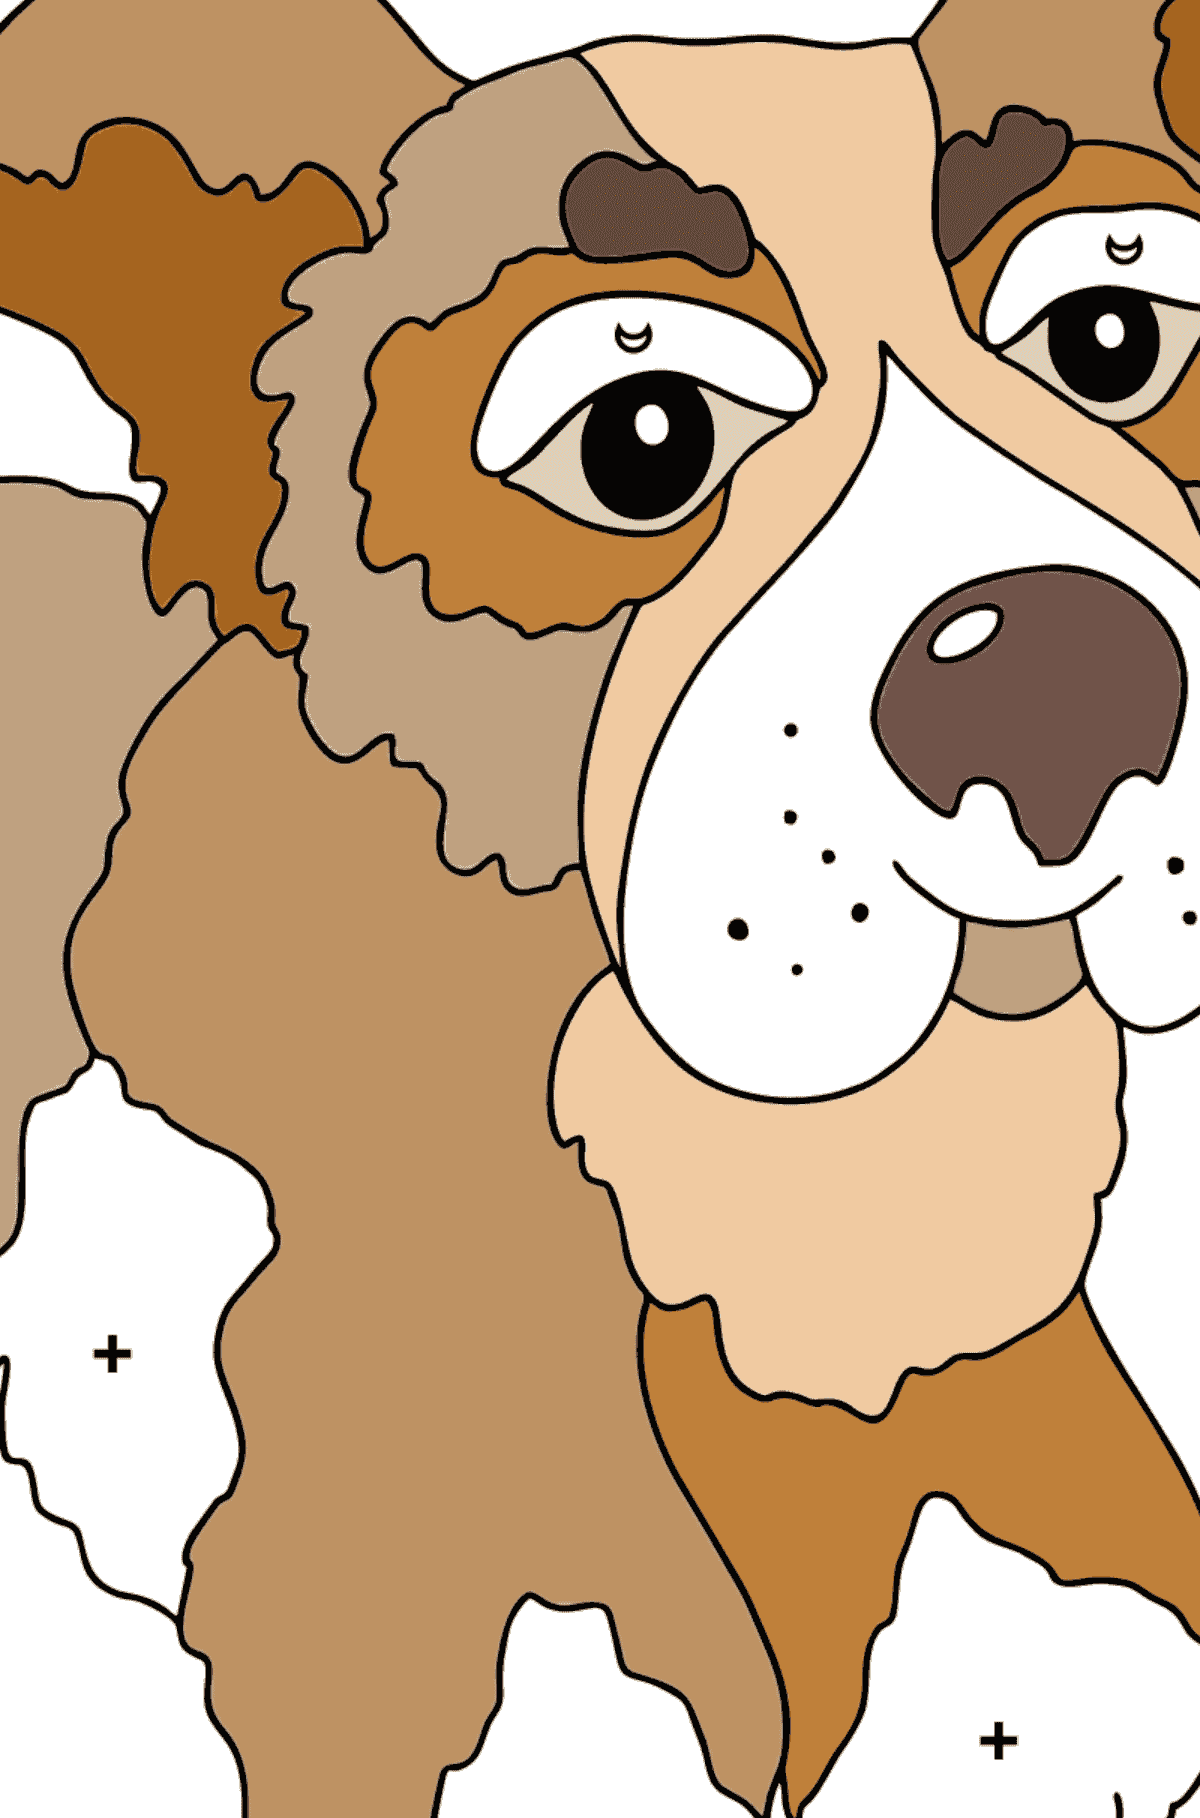 Coloring Page - A Dog is Playing with a Ball for Kids  - Color by Special Symbols